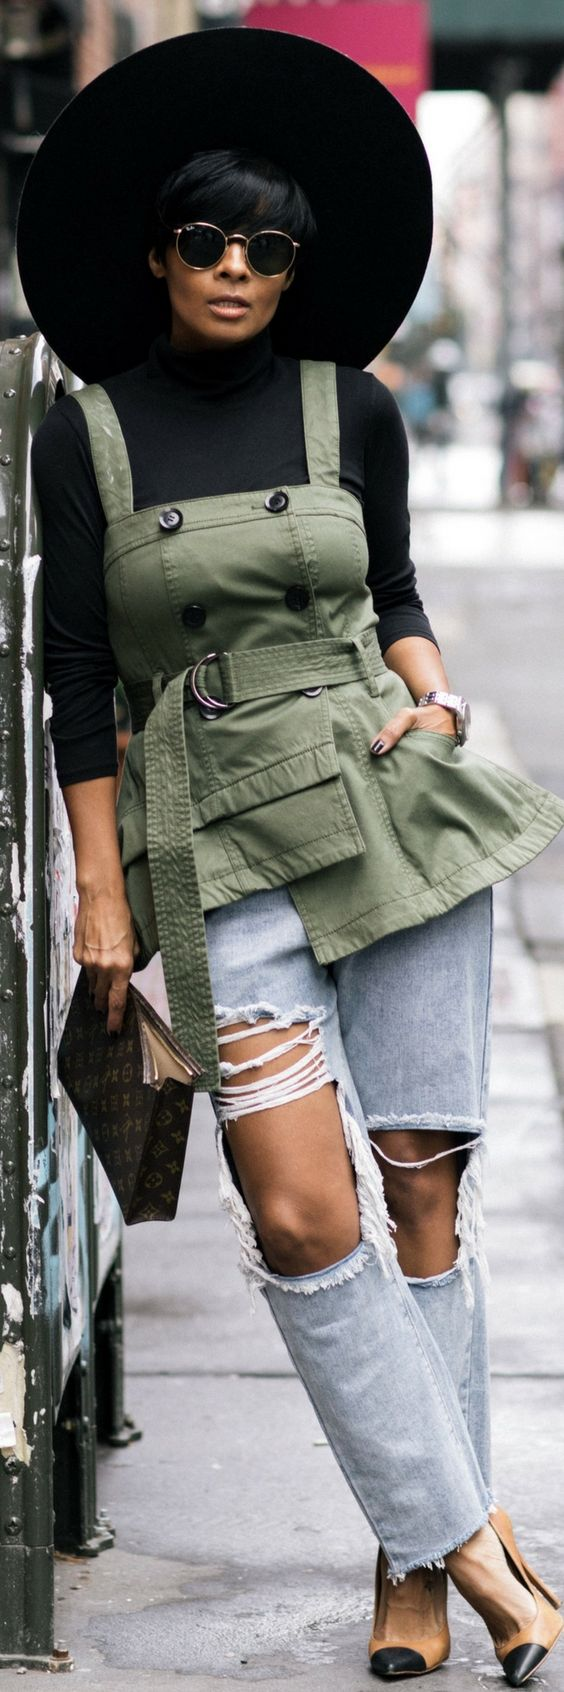 3 Of The Best How-To-Style Fall Outfit Ideas Youll Love https://ecstasymodels.blog/2017/11/08/3-best-style-fall-outfit-ideas/?utm_campaign=coschedule&utm_source=pinterest&utm_medium=Ecstasy%20Models%20-%20Womens%20Fashion%20and%20Streetstyle&utm_content=3%20Of%20The%20Best%20How-To-Style%20Fall%20Outfit%20Ideas%20Youll%20Love